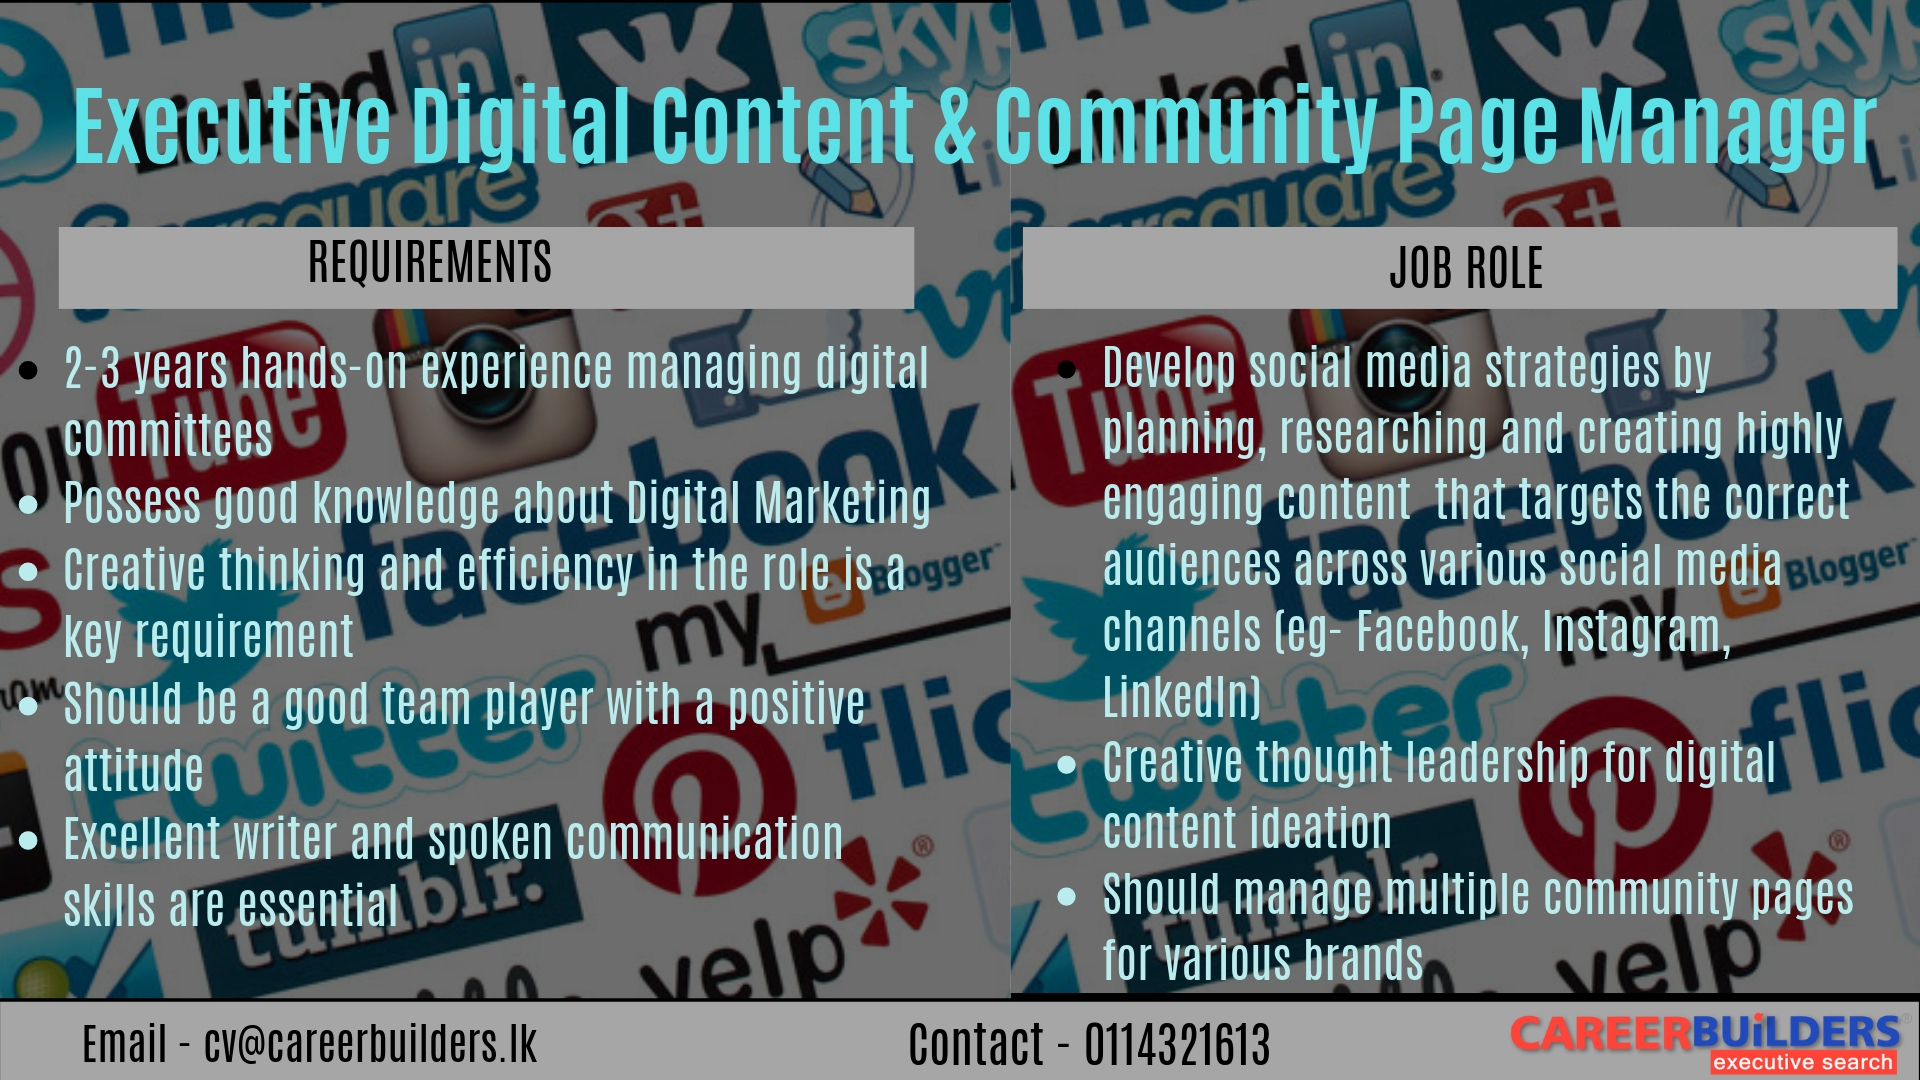 top jobs, job vacancies - Executive Digital Content & Community Page Manager in Colombo